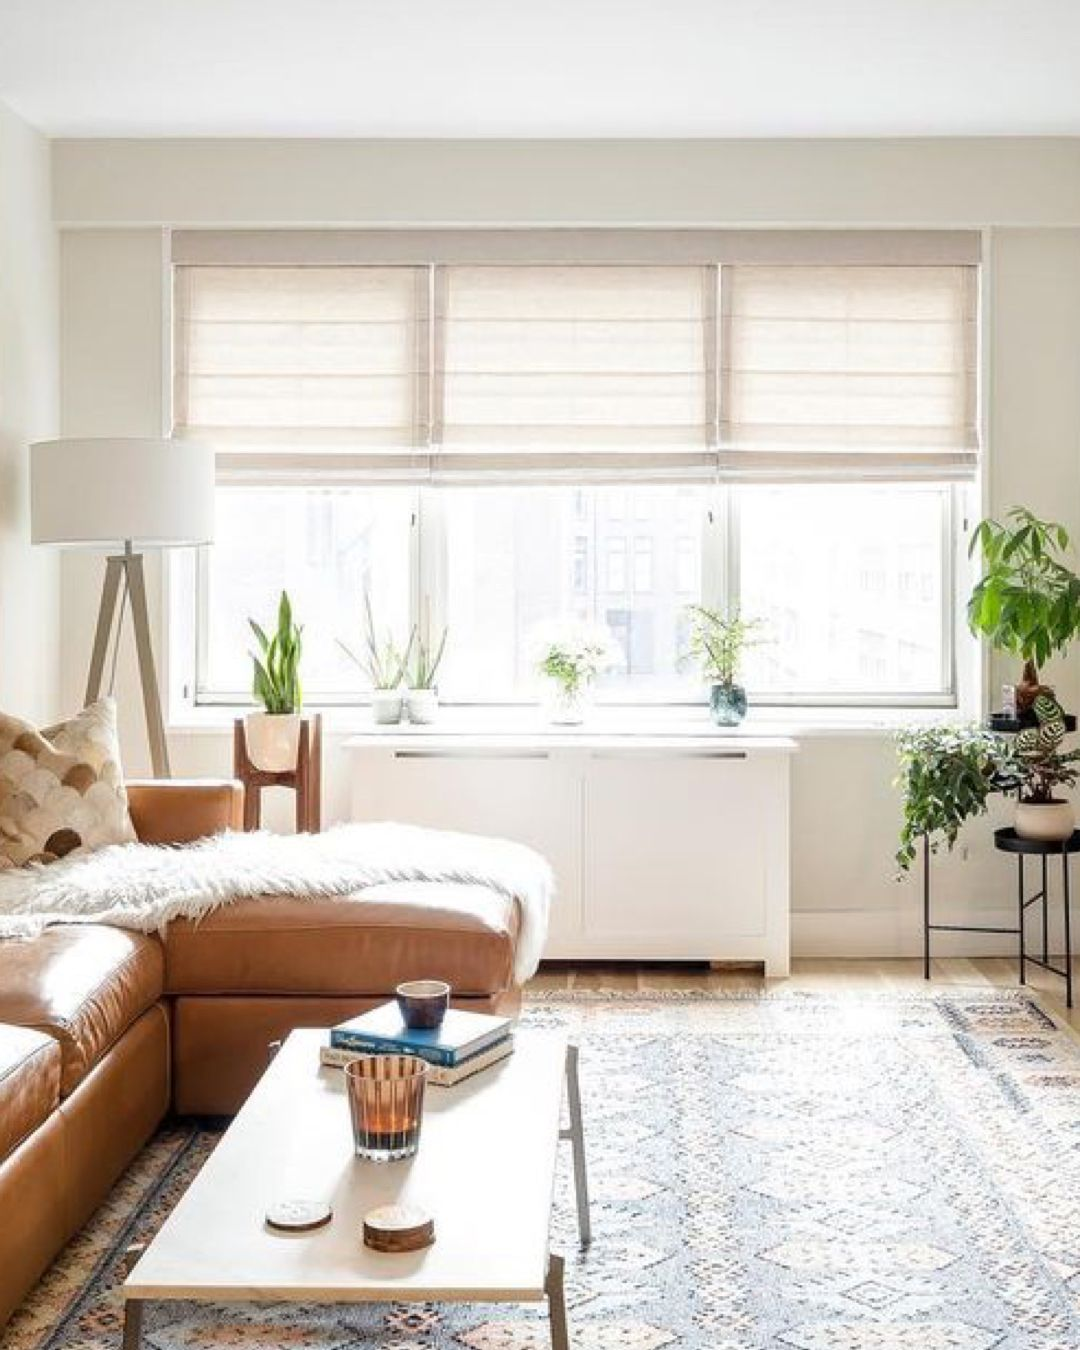 Unwind The Mind In 2021 Living Room Windows The Shade Store Comfortable Couch Window ideas living room